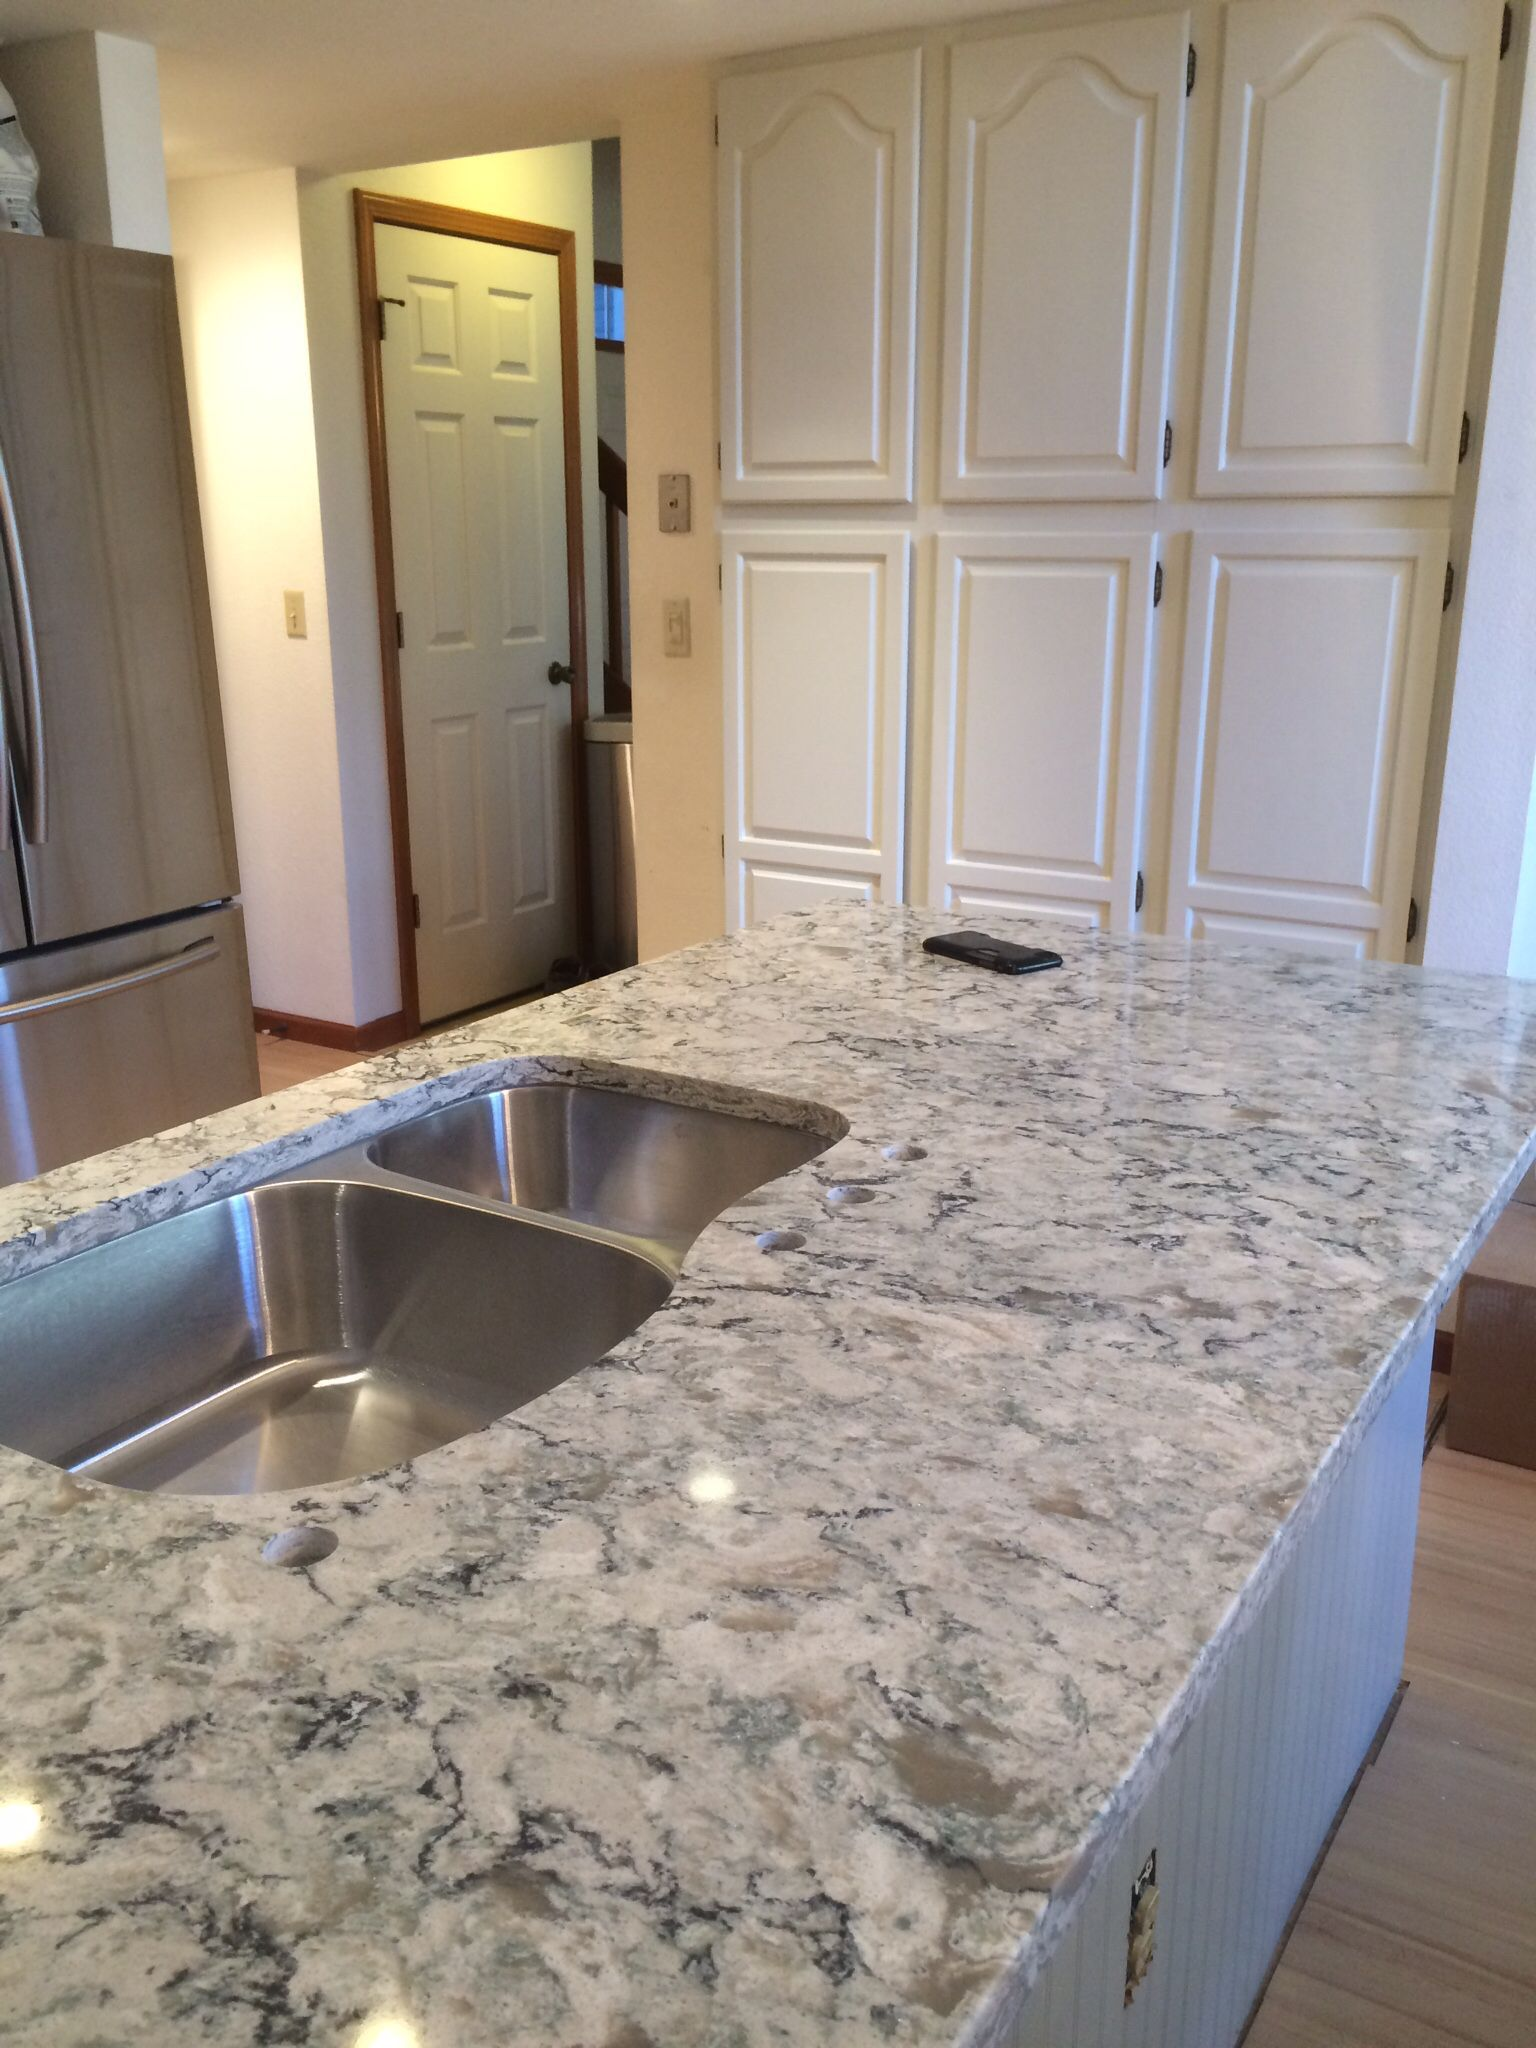 Cambria Praa Sands Quartz Countertops The New Kitchen Is Turning